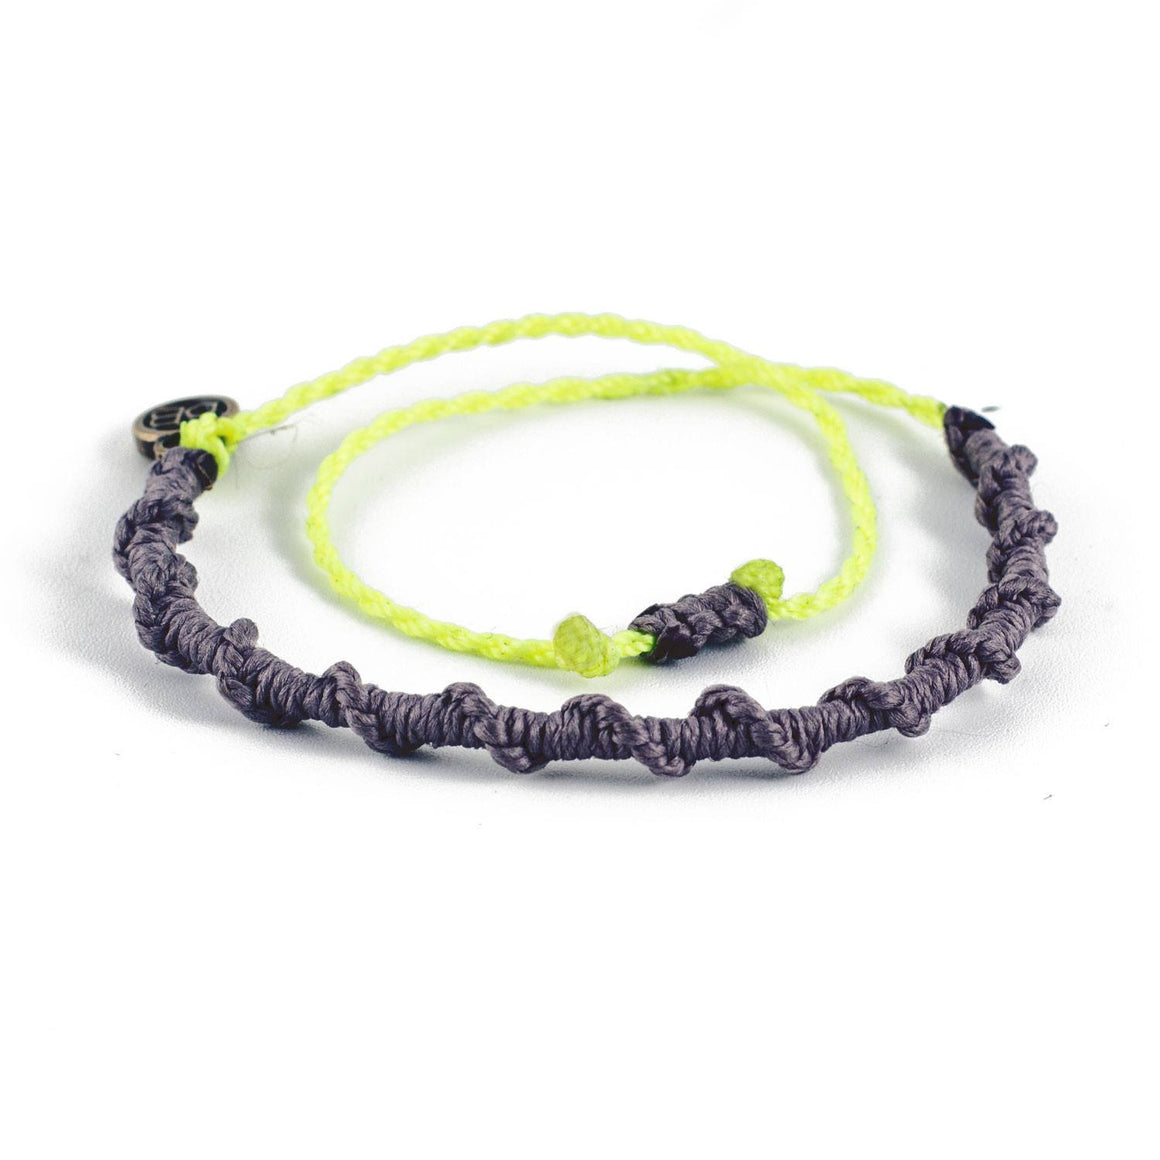 Chullpa Stone Grey tribal bracelets cover